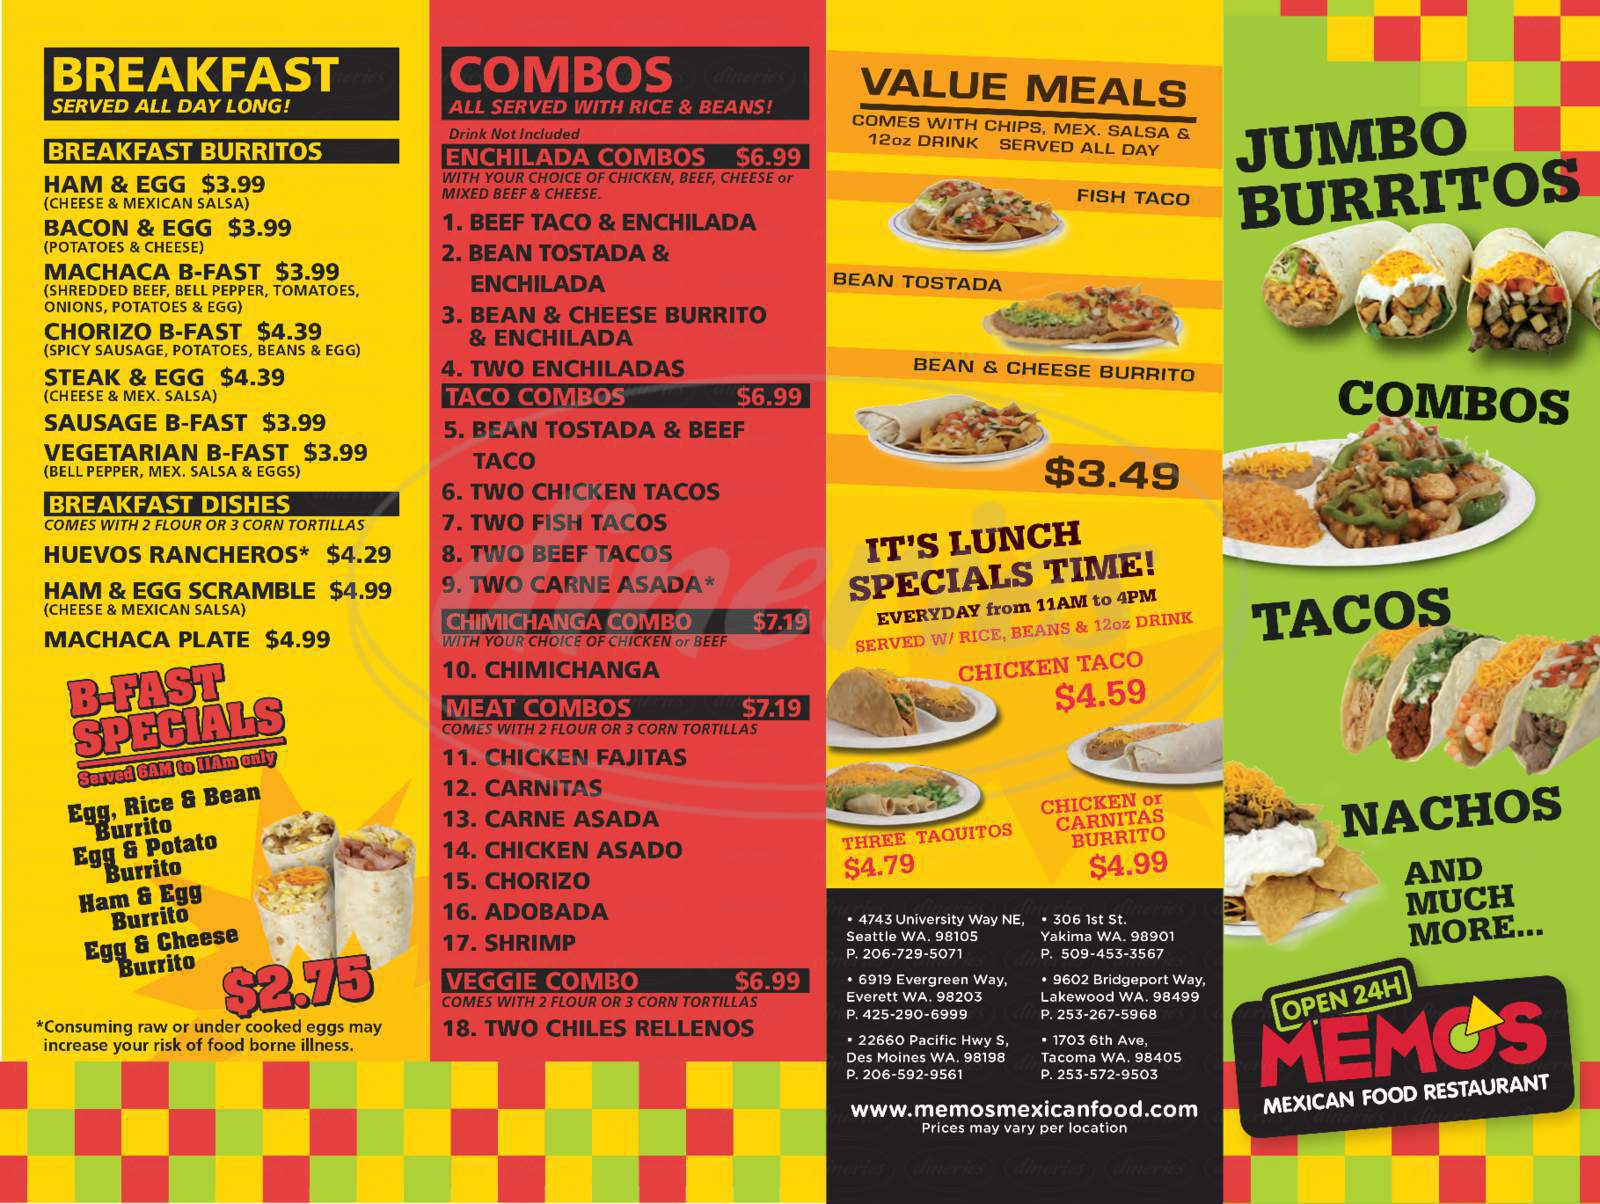 menu for Memo's Mexican Food Restaurant